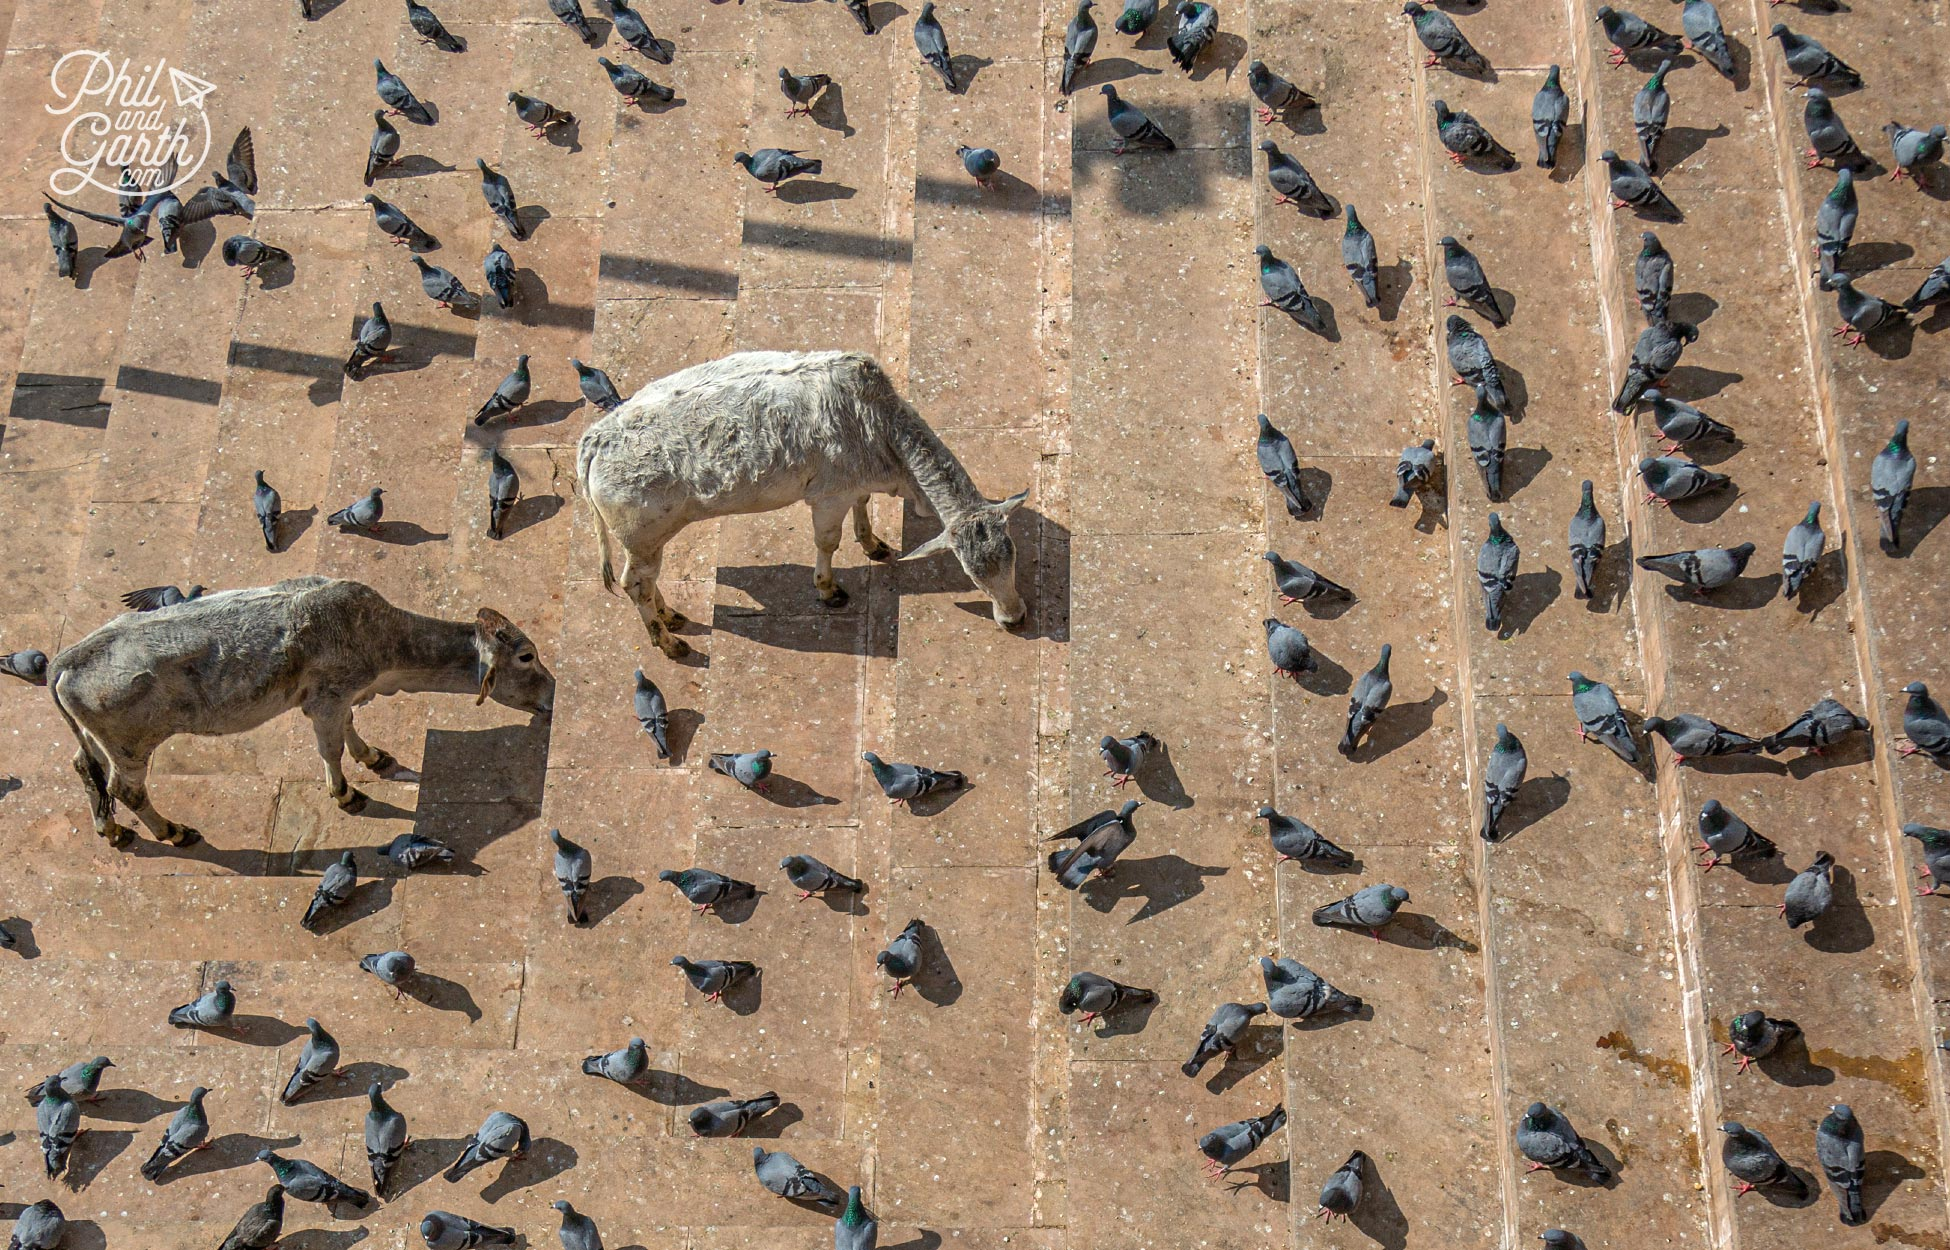 Pigeons and cows looking for food on the ghats